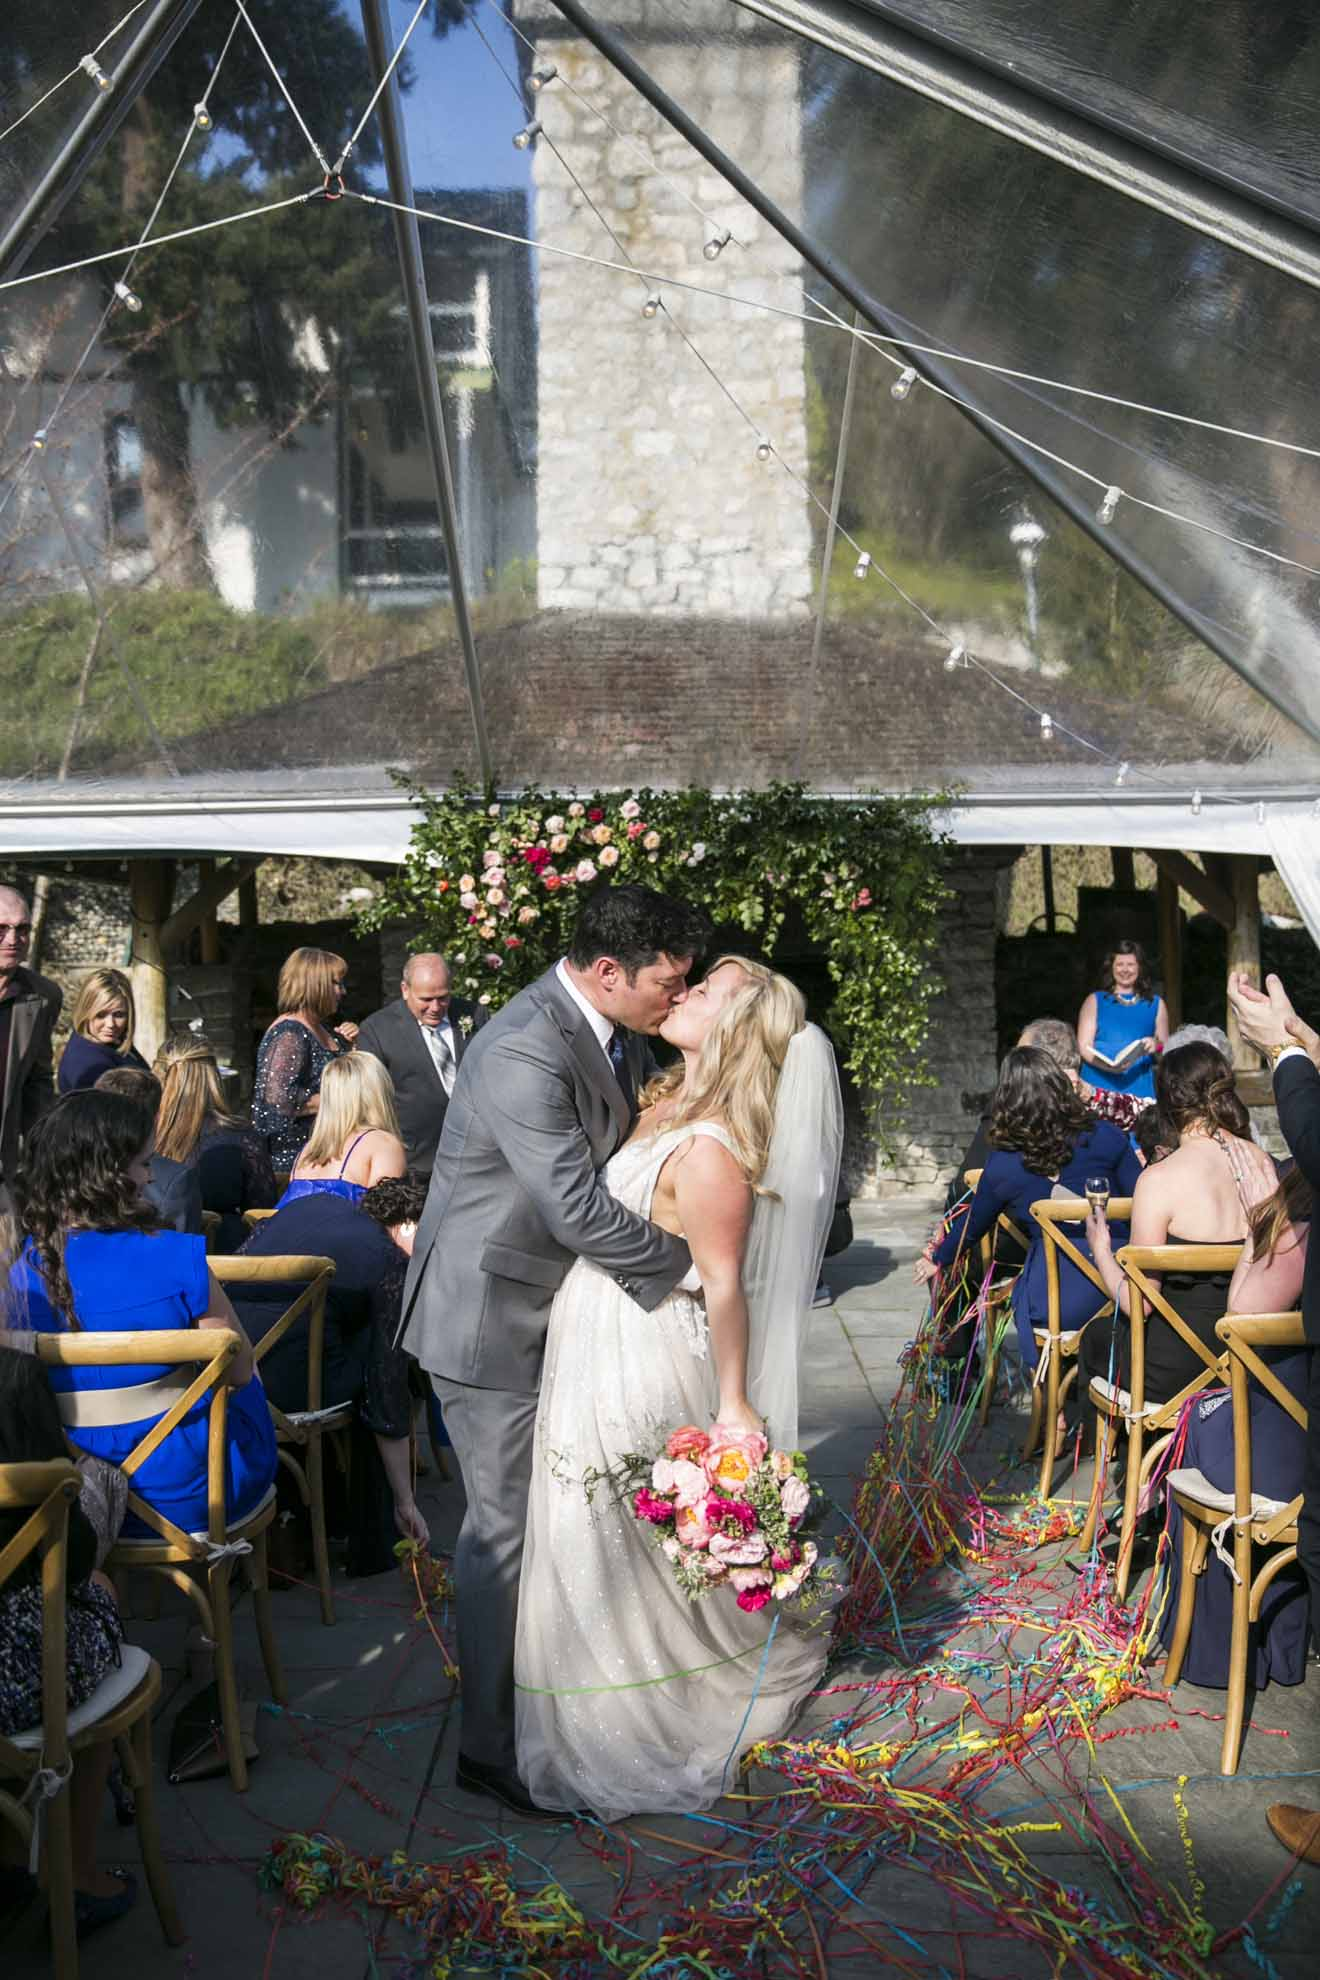 Bride and groom kiss at wedding ceremony under a clear tent; bride holding a hot pink and peach wedding bouquet - Seattle Wedding Flowers by Flora Nova Design; Hot pink and peach wedding at Roche Harbor Resort